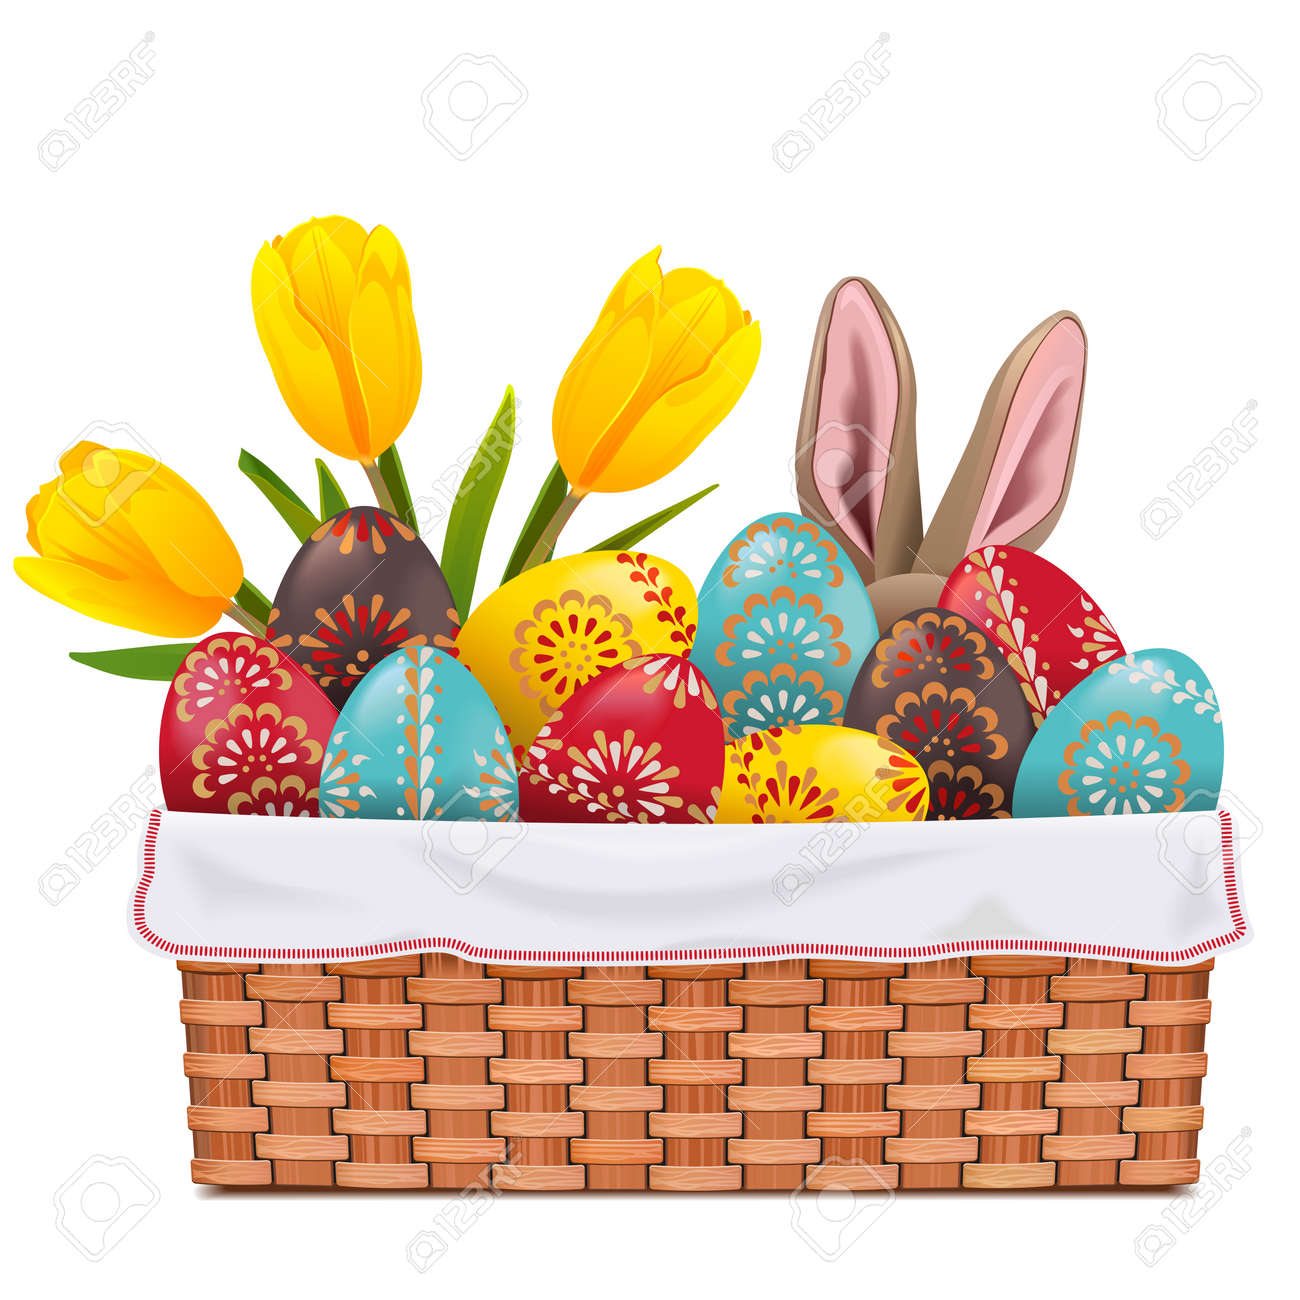 Vector Easter Basket with Painted Eggs isolated on white background - 165558448